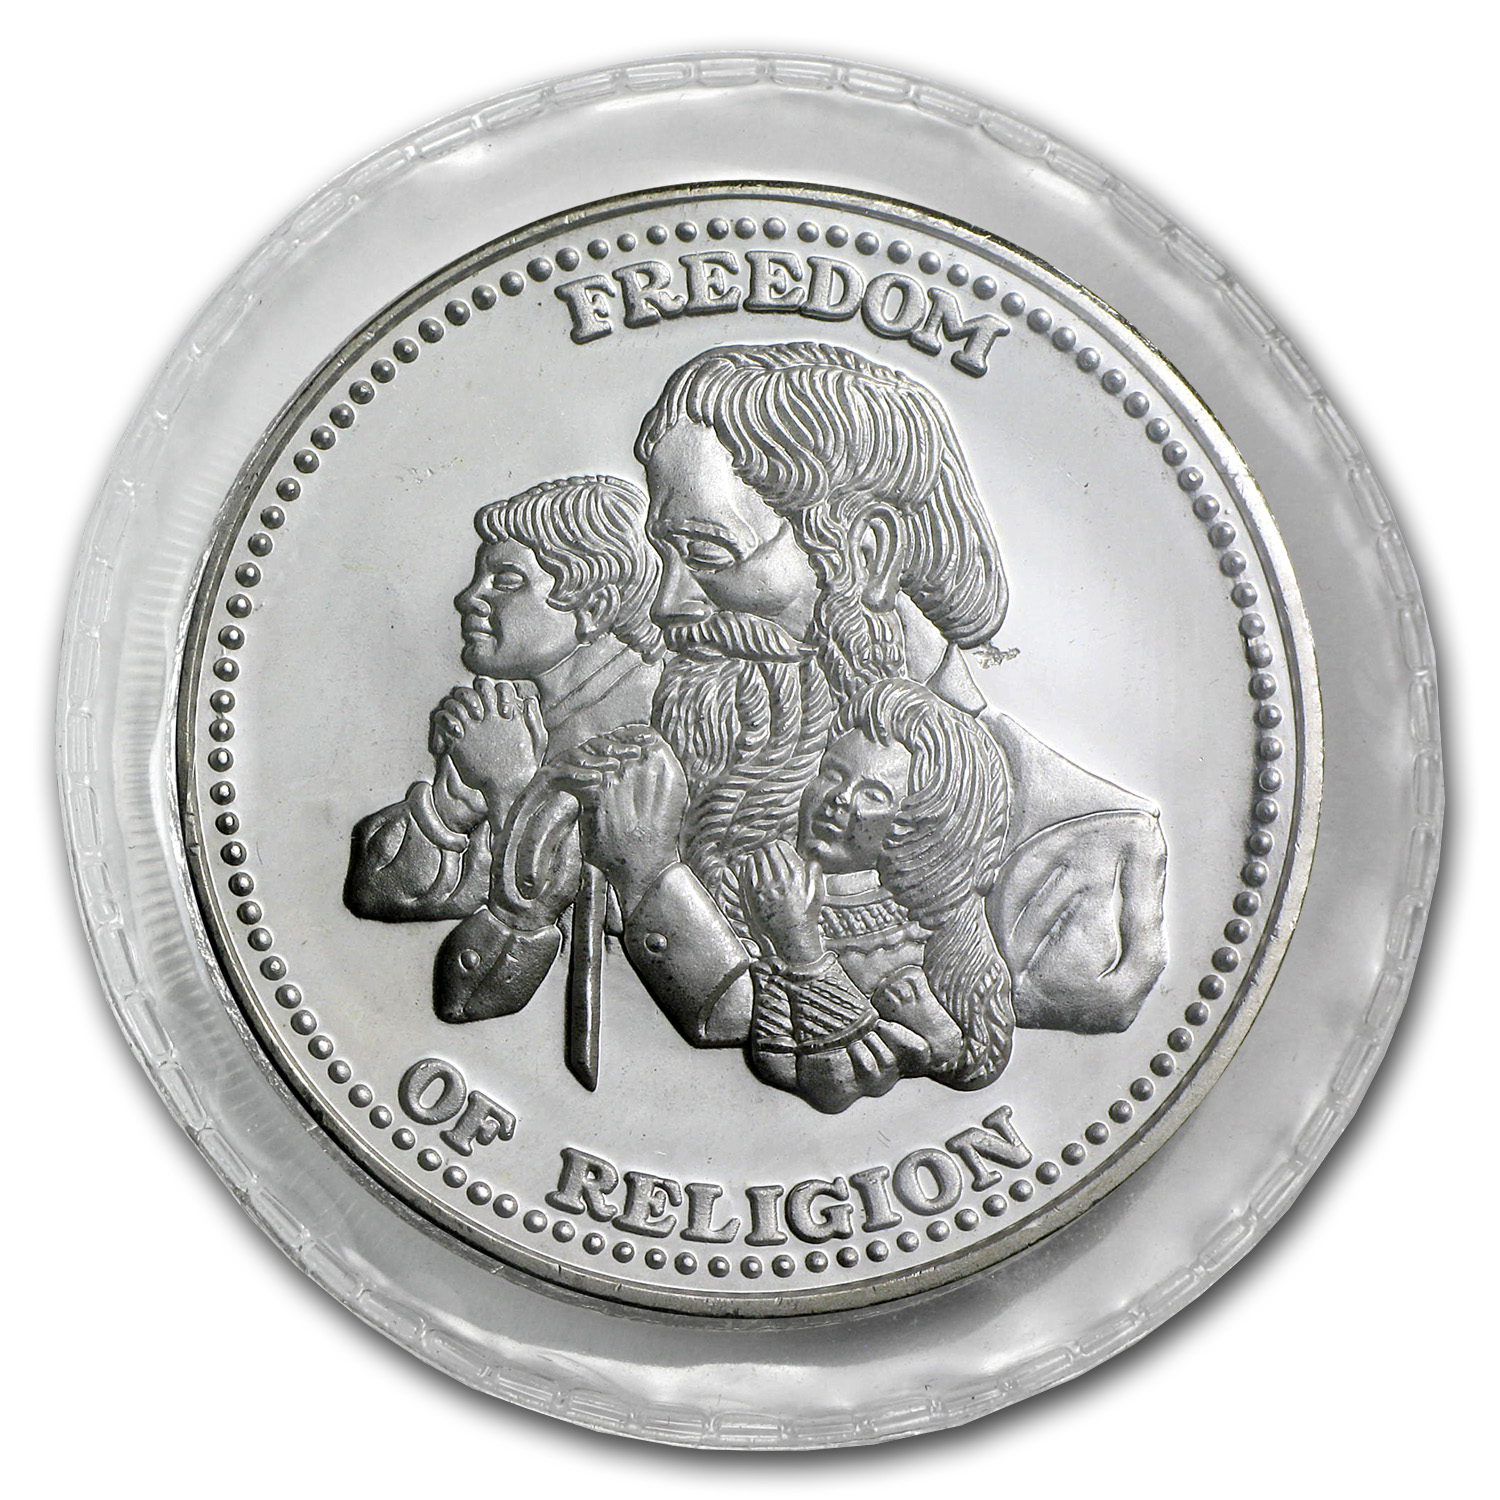 1 oz Silver Rnd - Johnson Matthey (Sealed, Freedom of Religion)